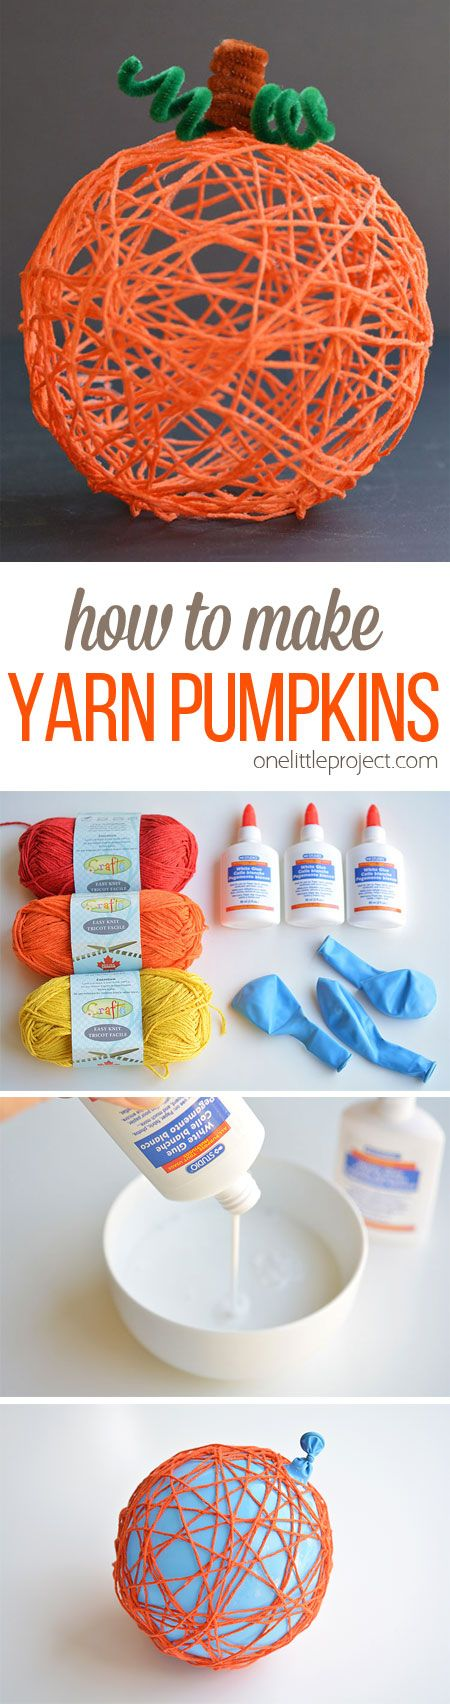 These yarn pumpkins are such a fun fall craft idea! They'd make a BEAUTIFUL…